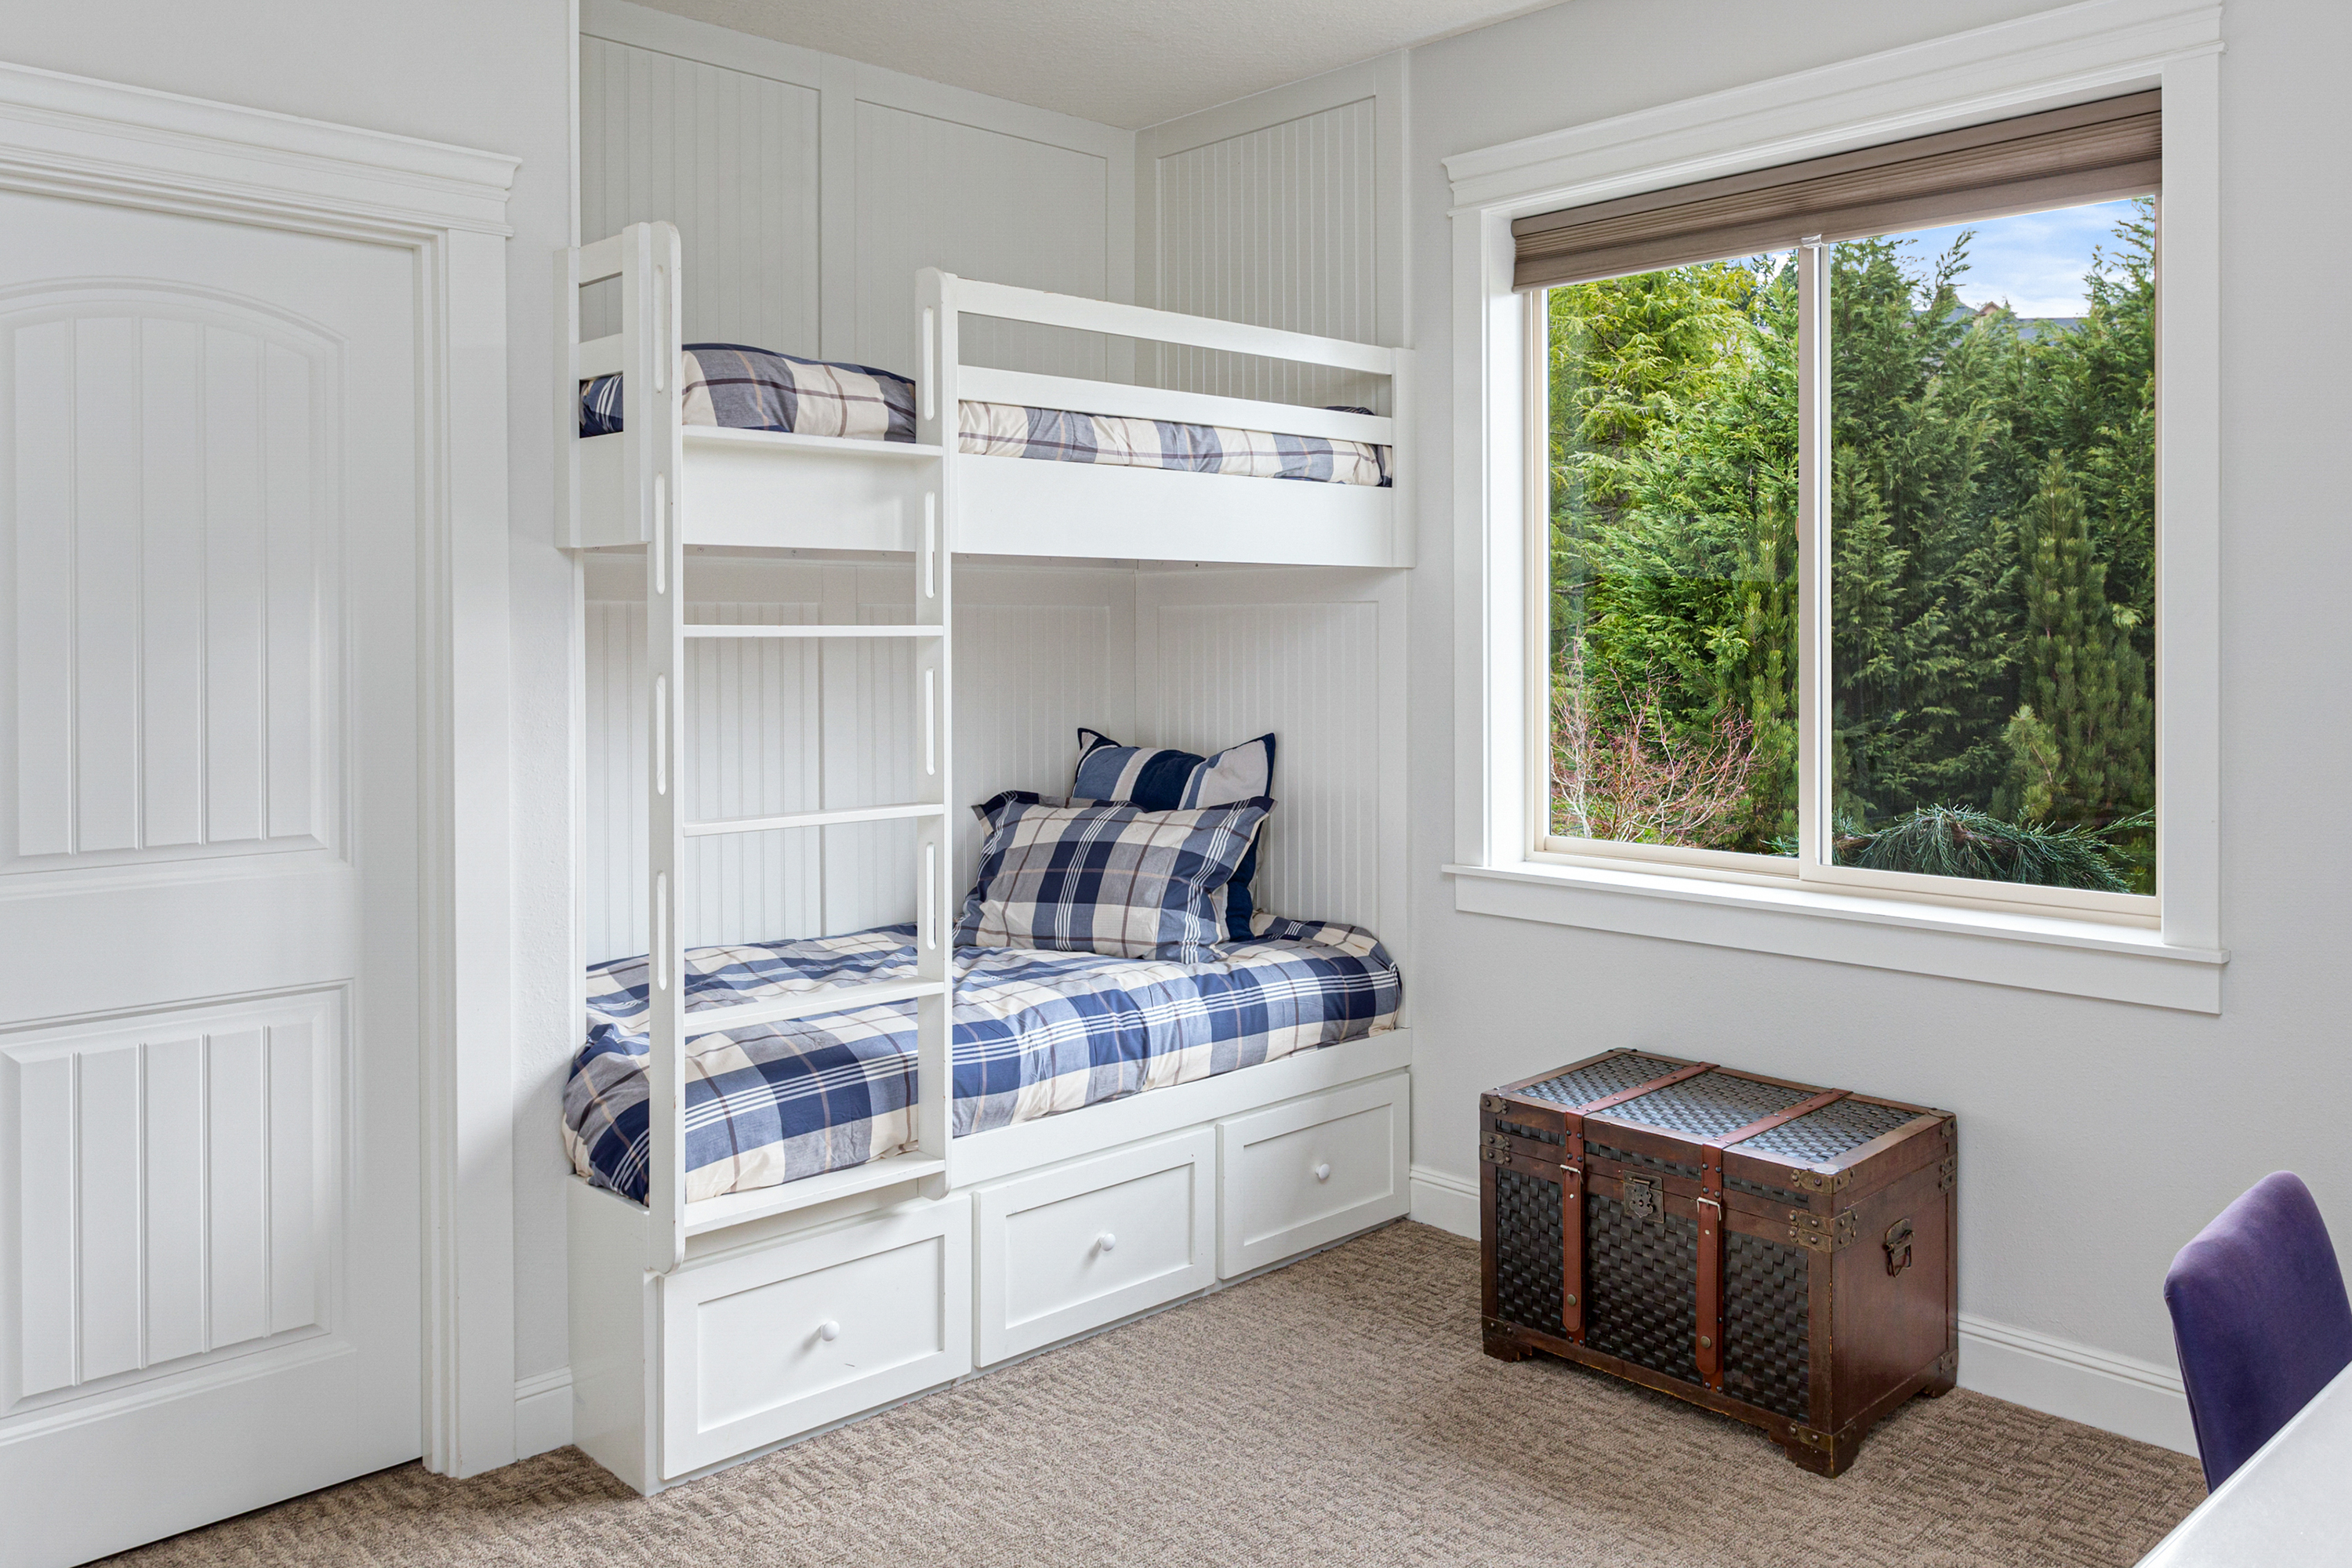 Custom bunk bed with storage.